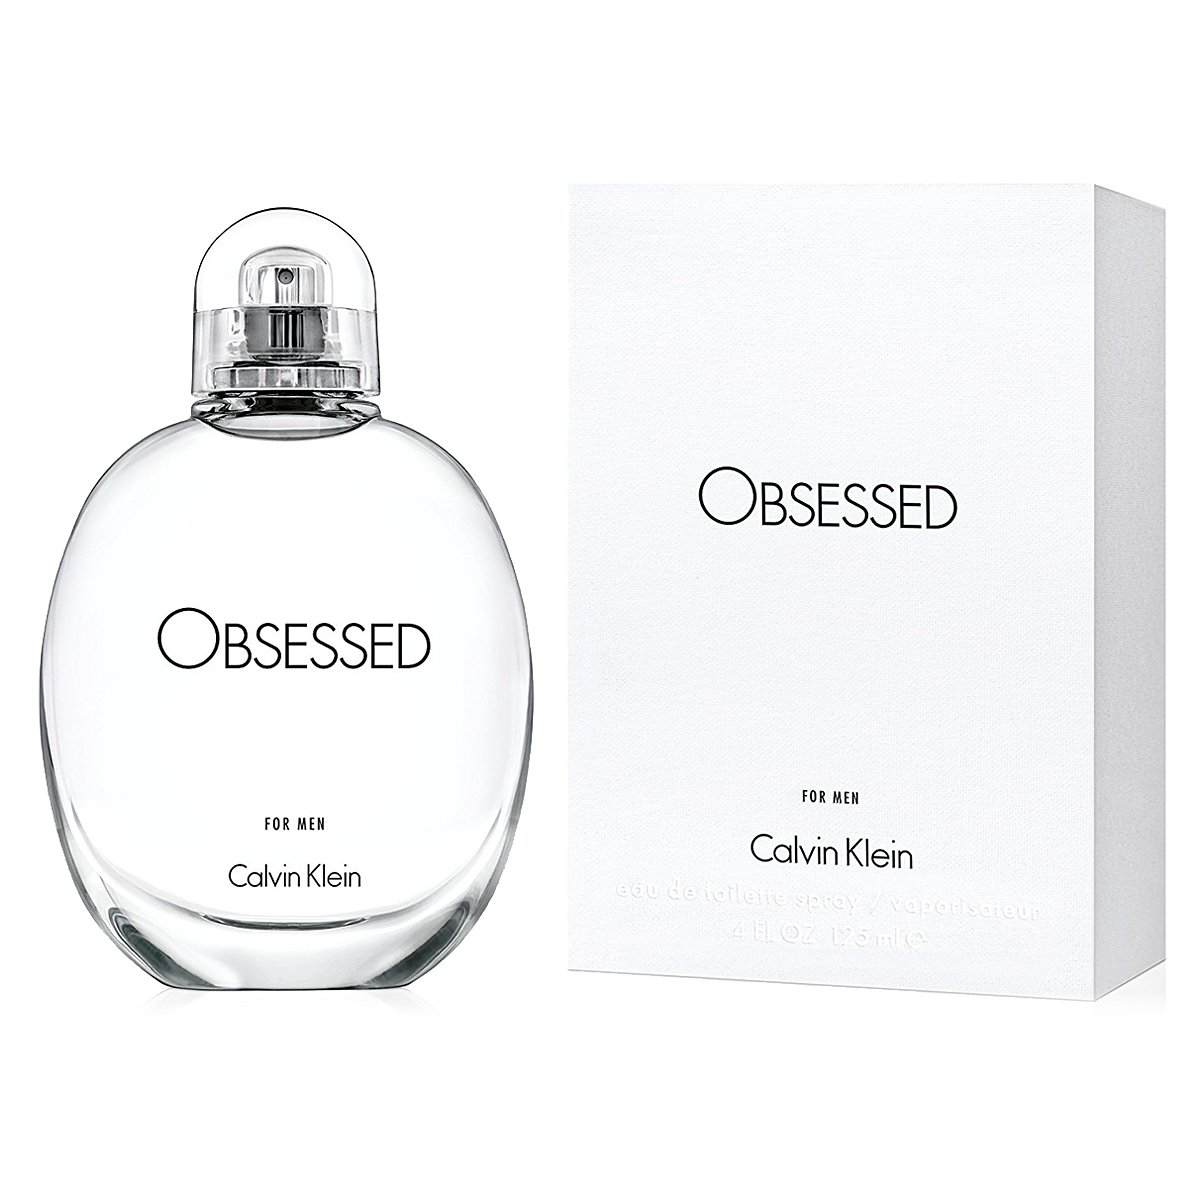 Туалетная вода Calvin Klein Obsessed For Men 125ml фото